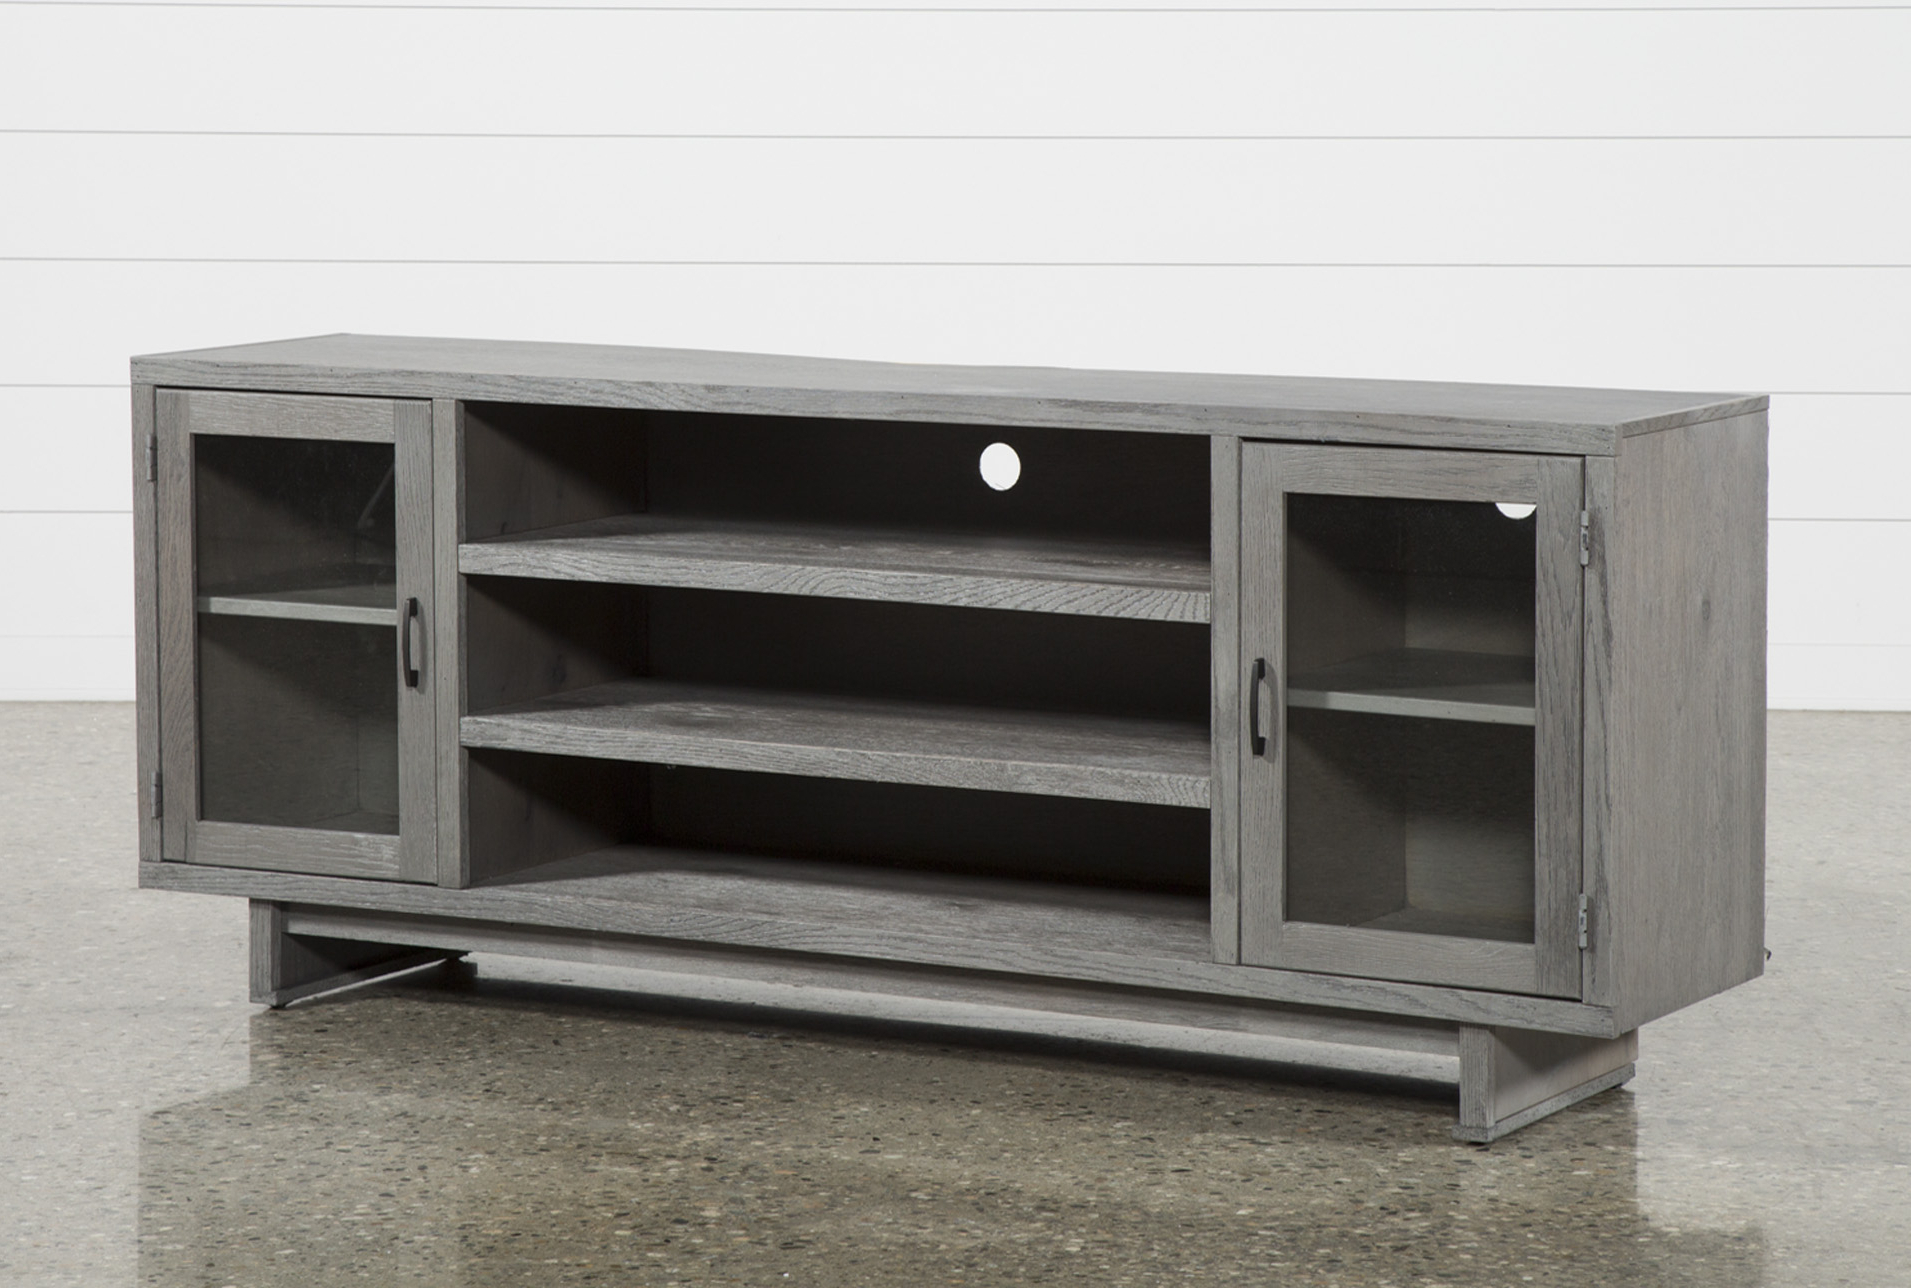 Melrose Titanium 74 Inch Tv Stand, Grey | House | Pinterest With Sinclair Grey 54 Inch Tv Stands (View 13 of 20)